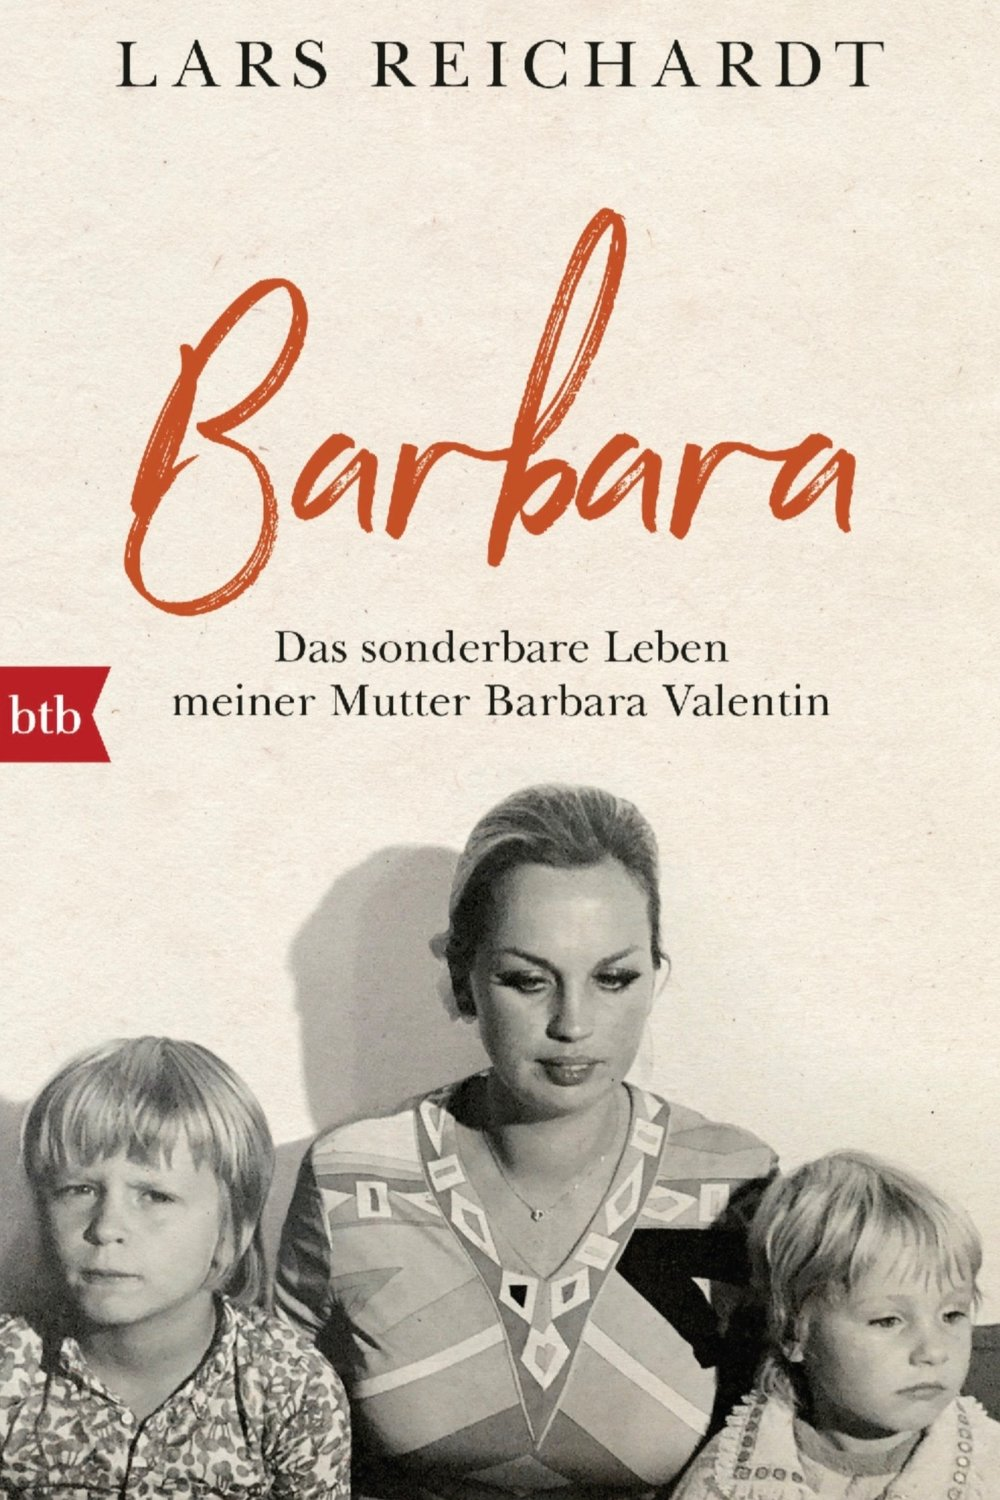 Barbara - Lars Reichardtbtb / September 2018